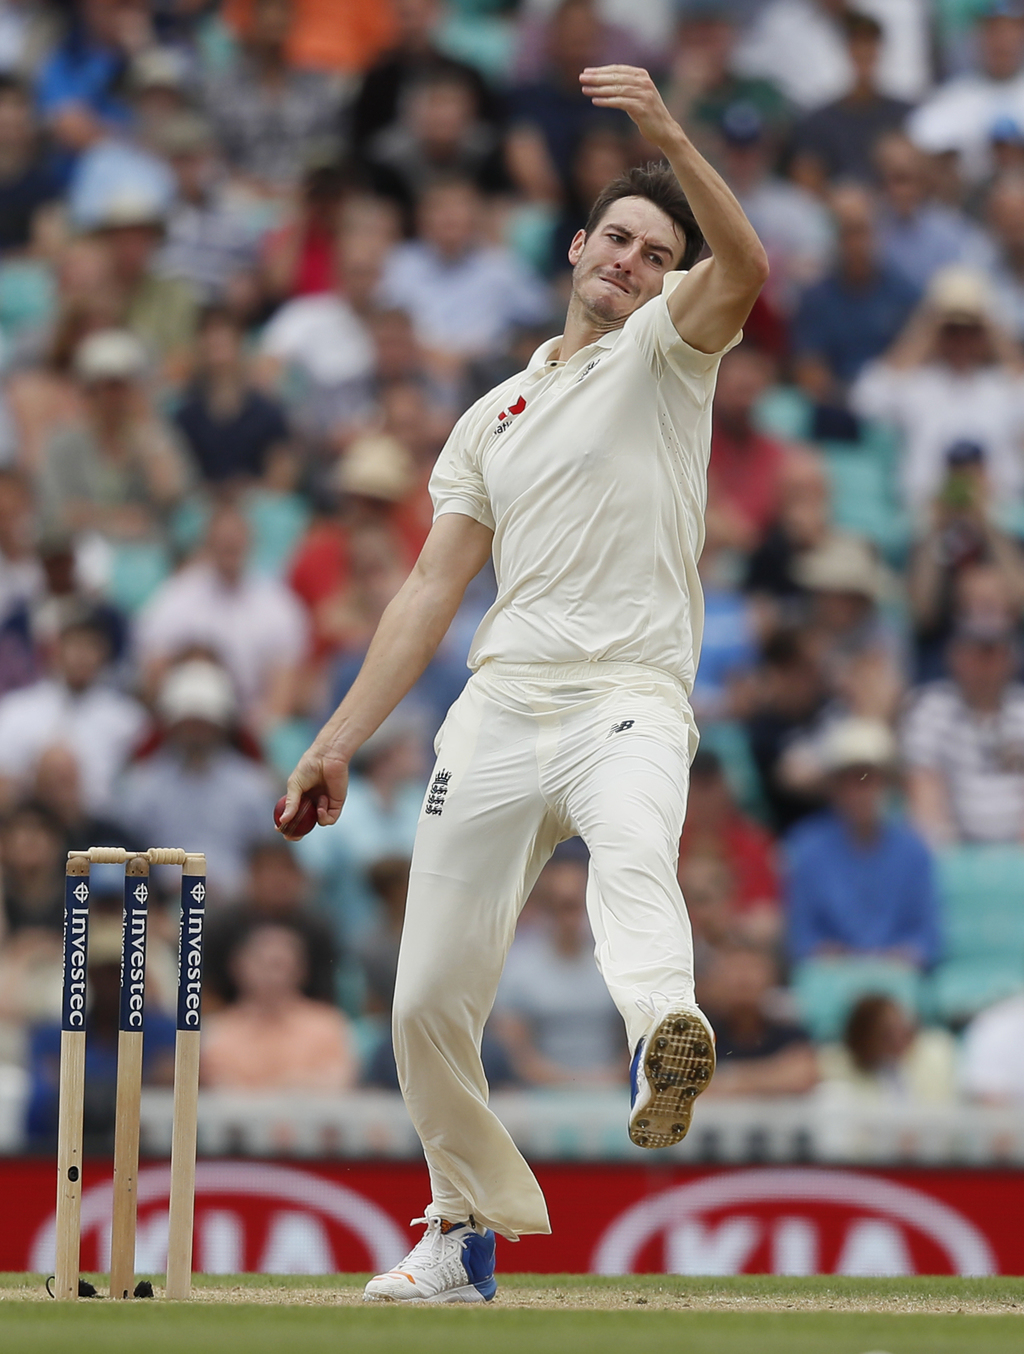 England's Toby Roland-Jones bowls on the fifth day of the third test match between England and South Africa at The Oval cricket ground in London, Mond...